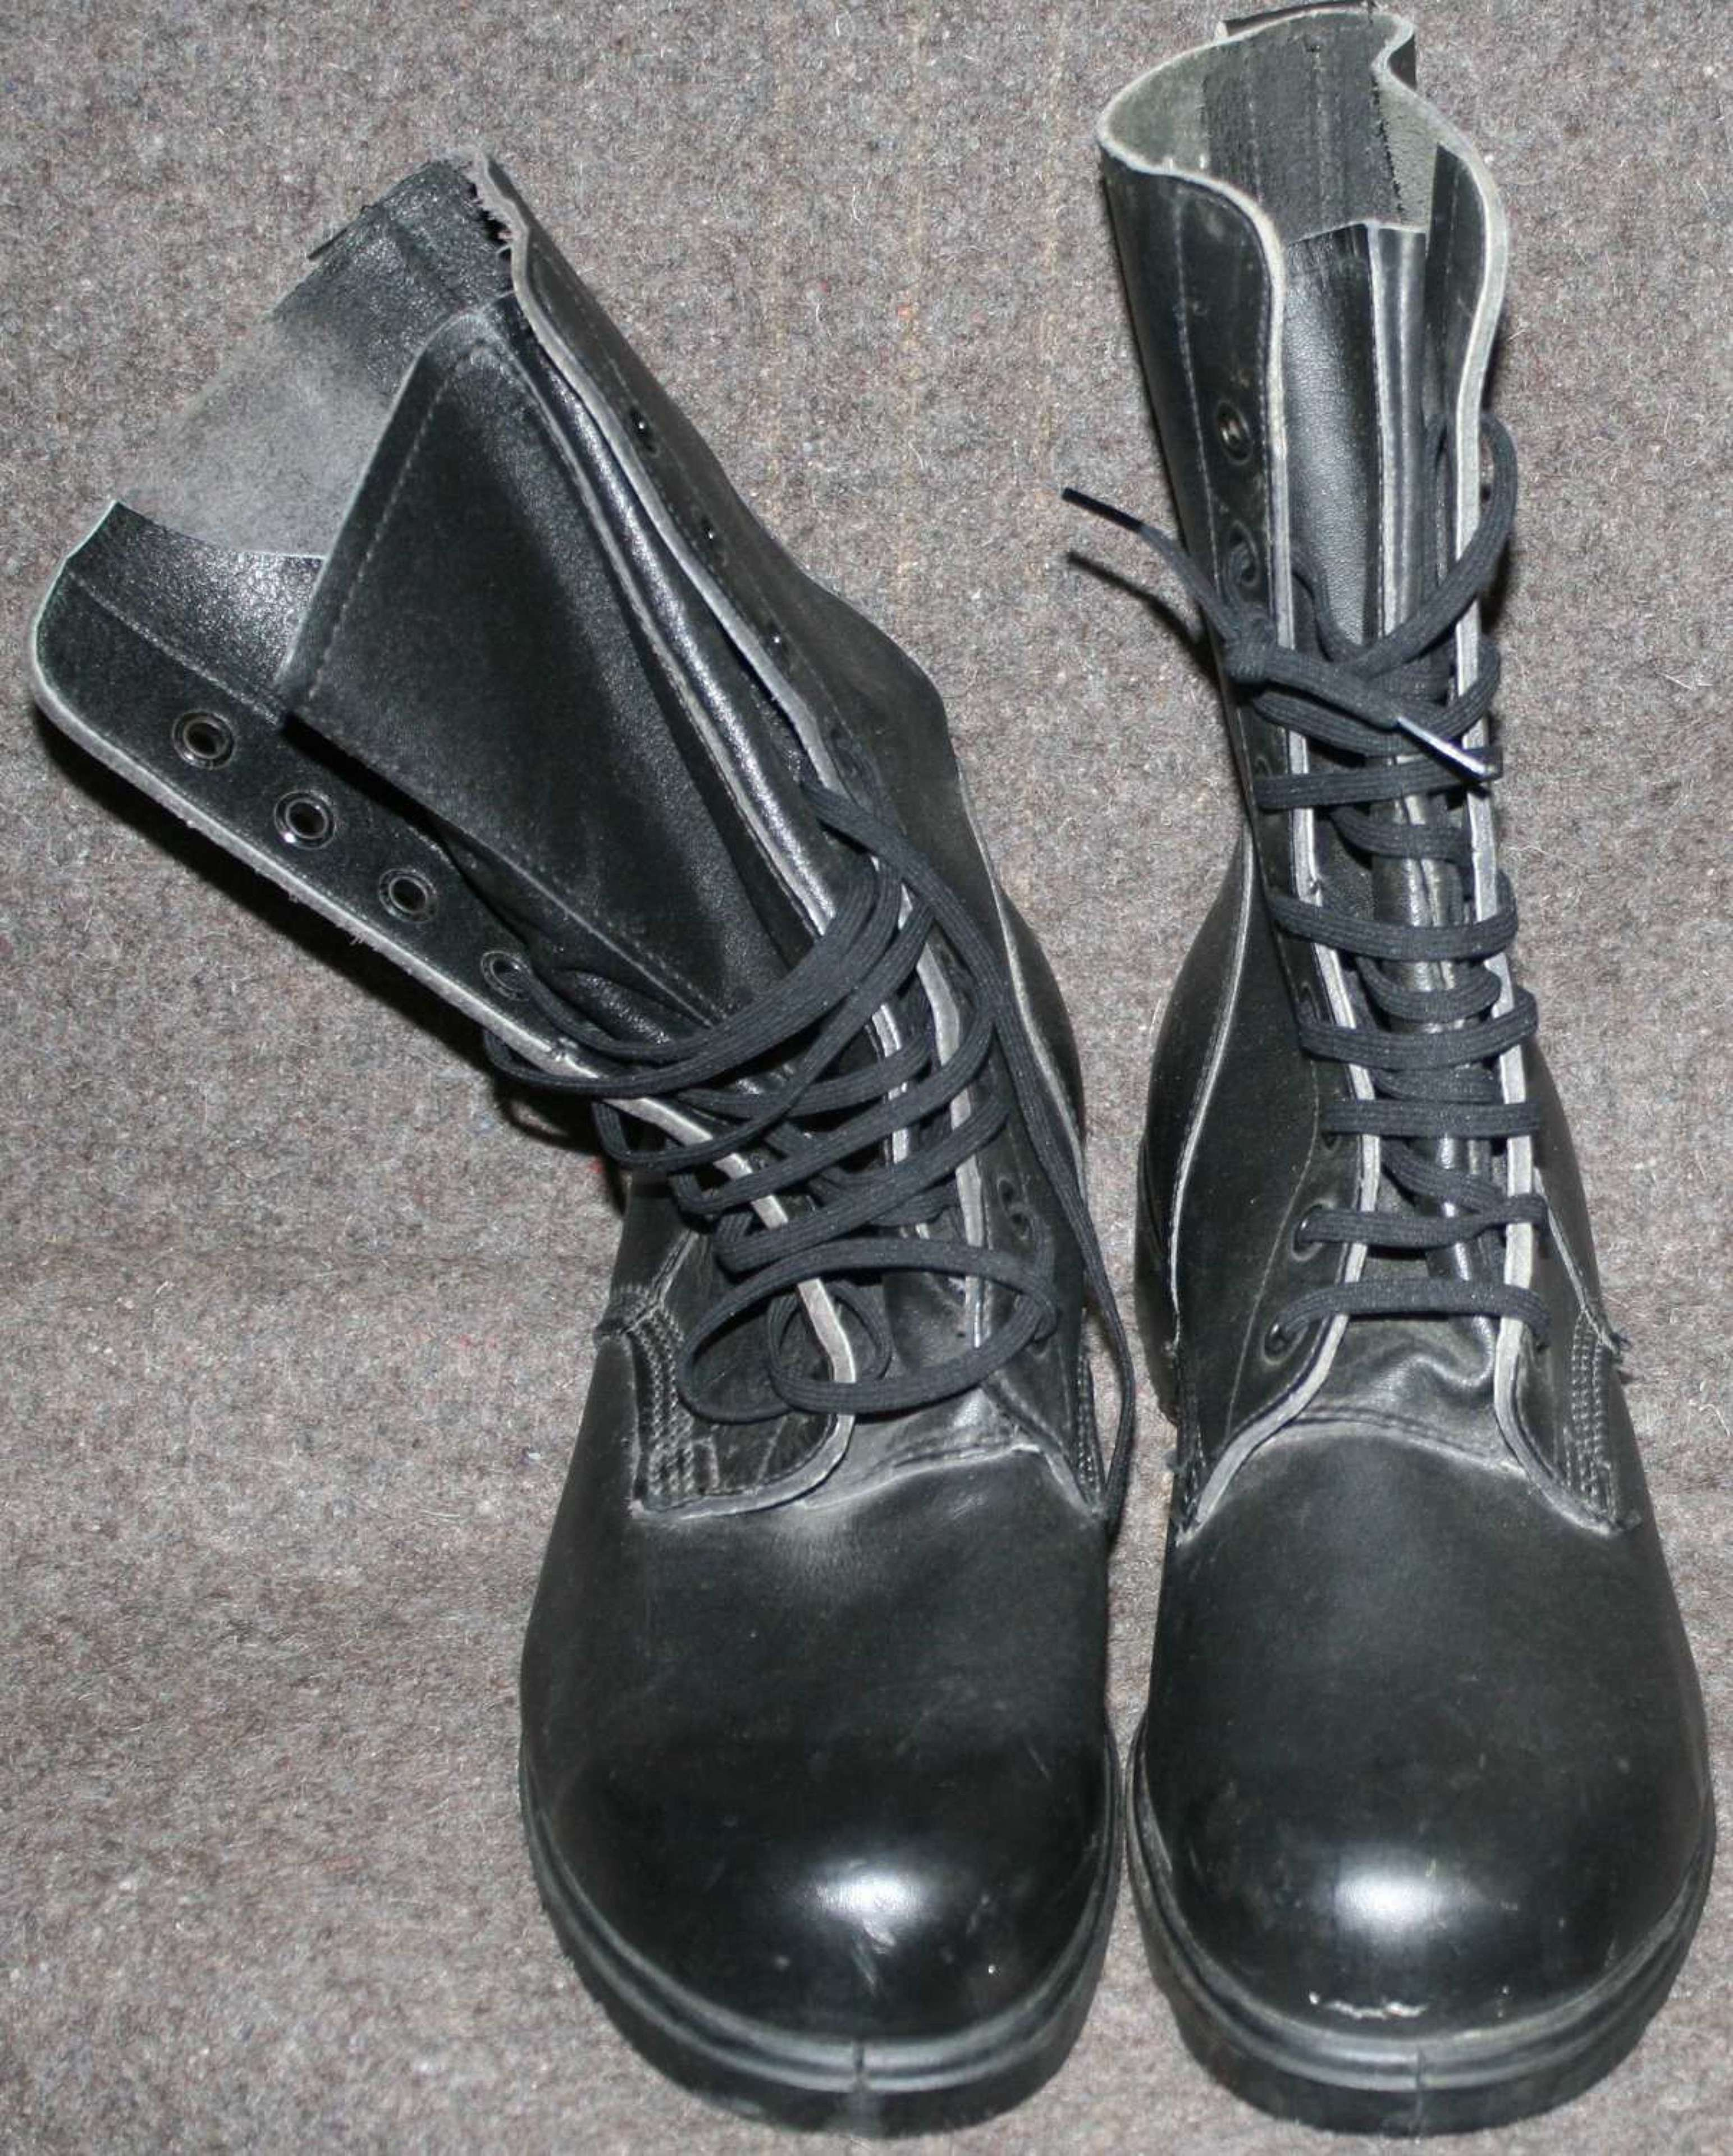 A PAIR OF NEAR MINT BRITISH 1984 DATED HIGH LEG BOOTS SIZE 10